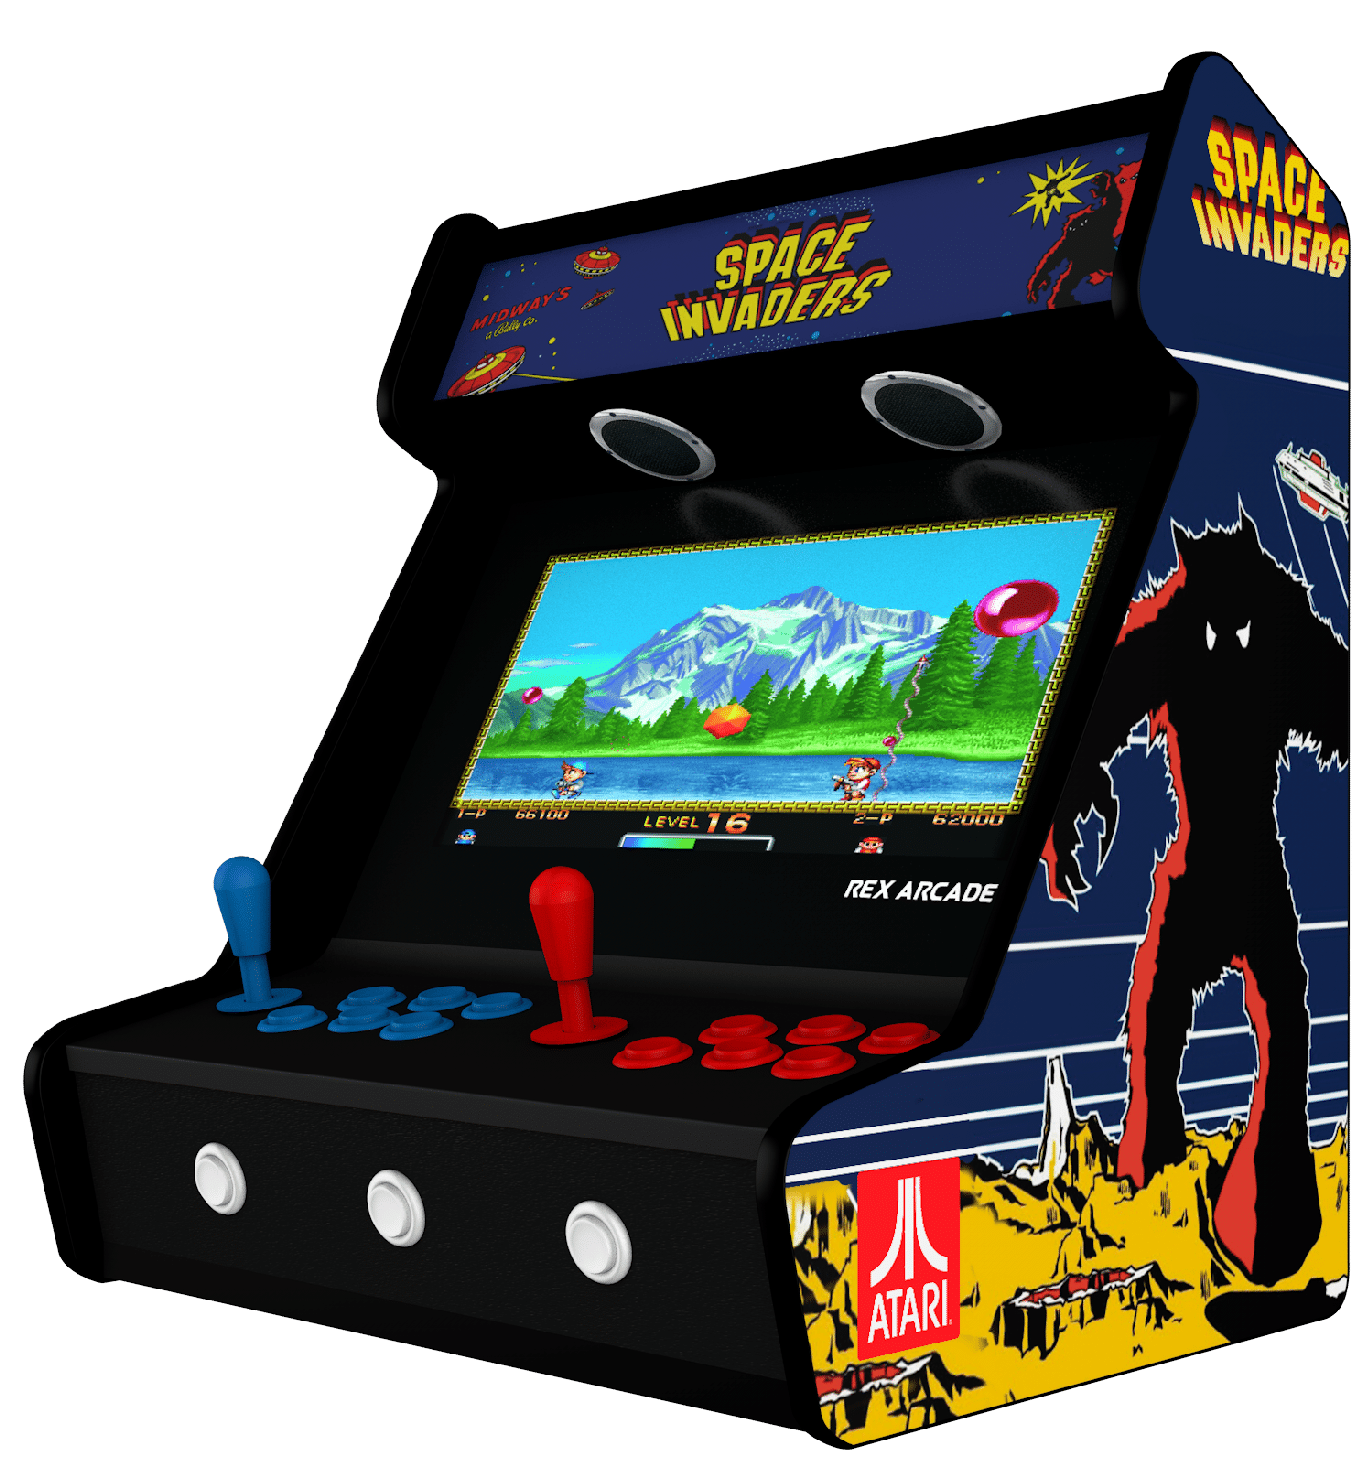 049 – SPACE INVADERS